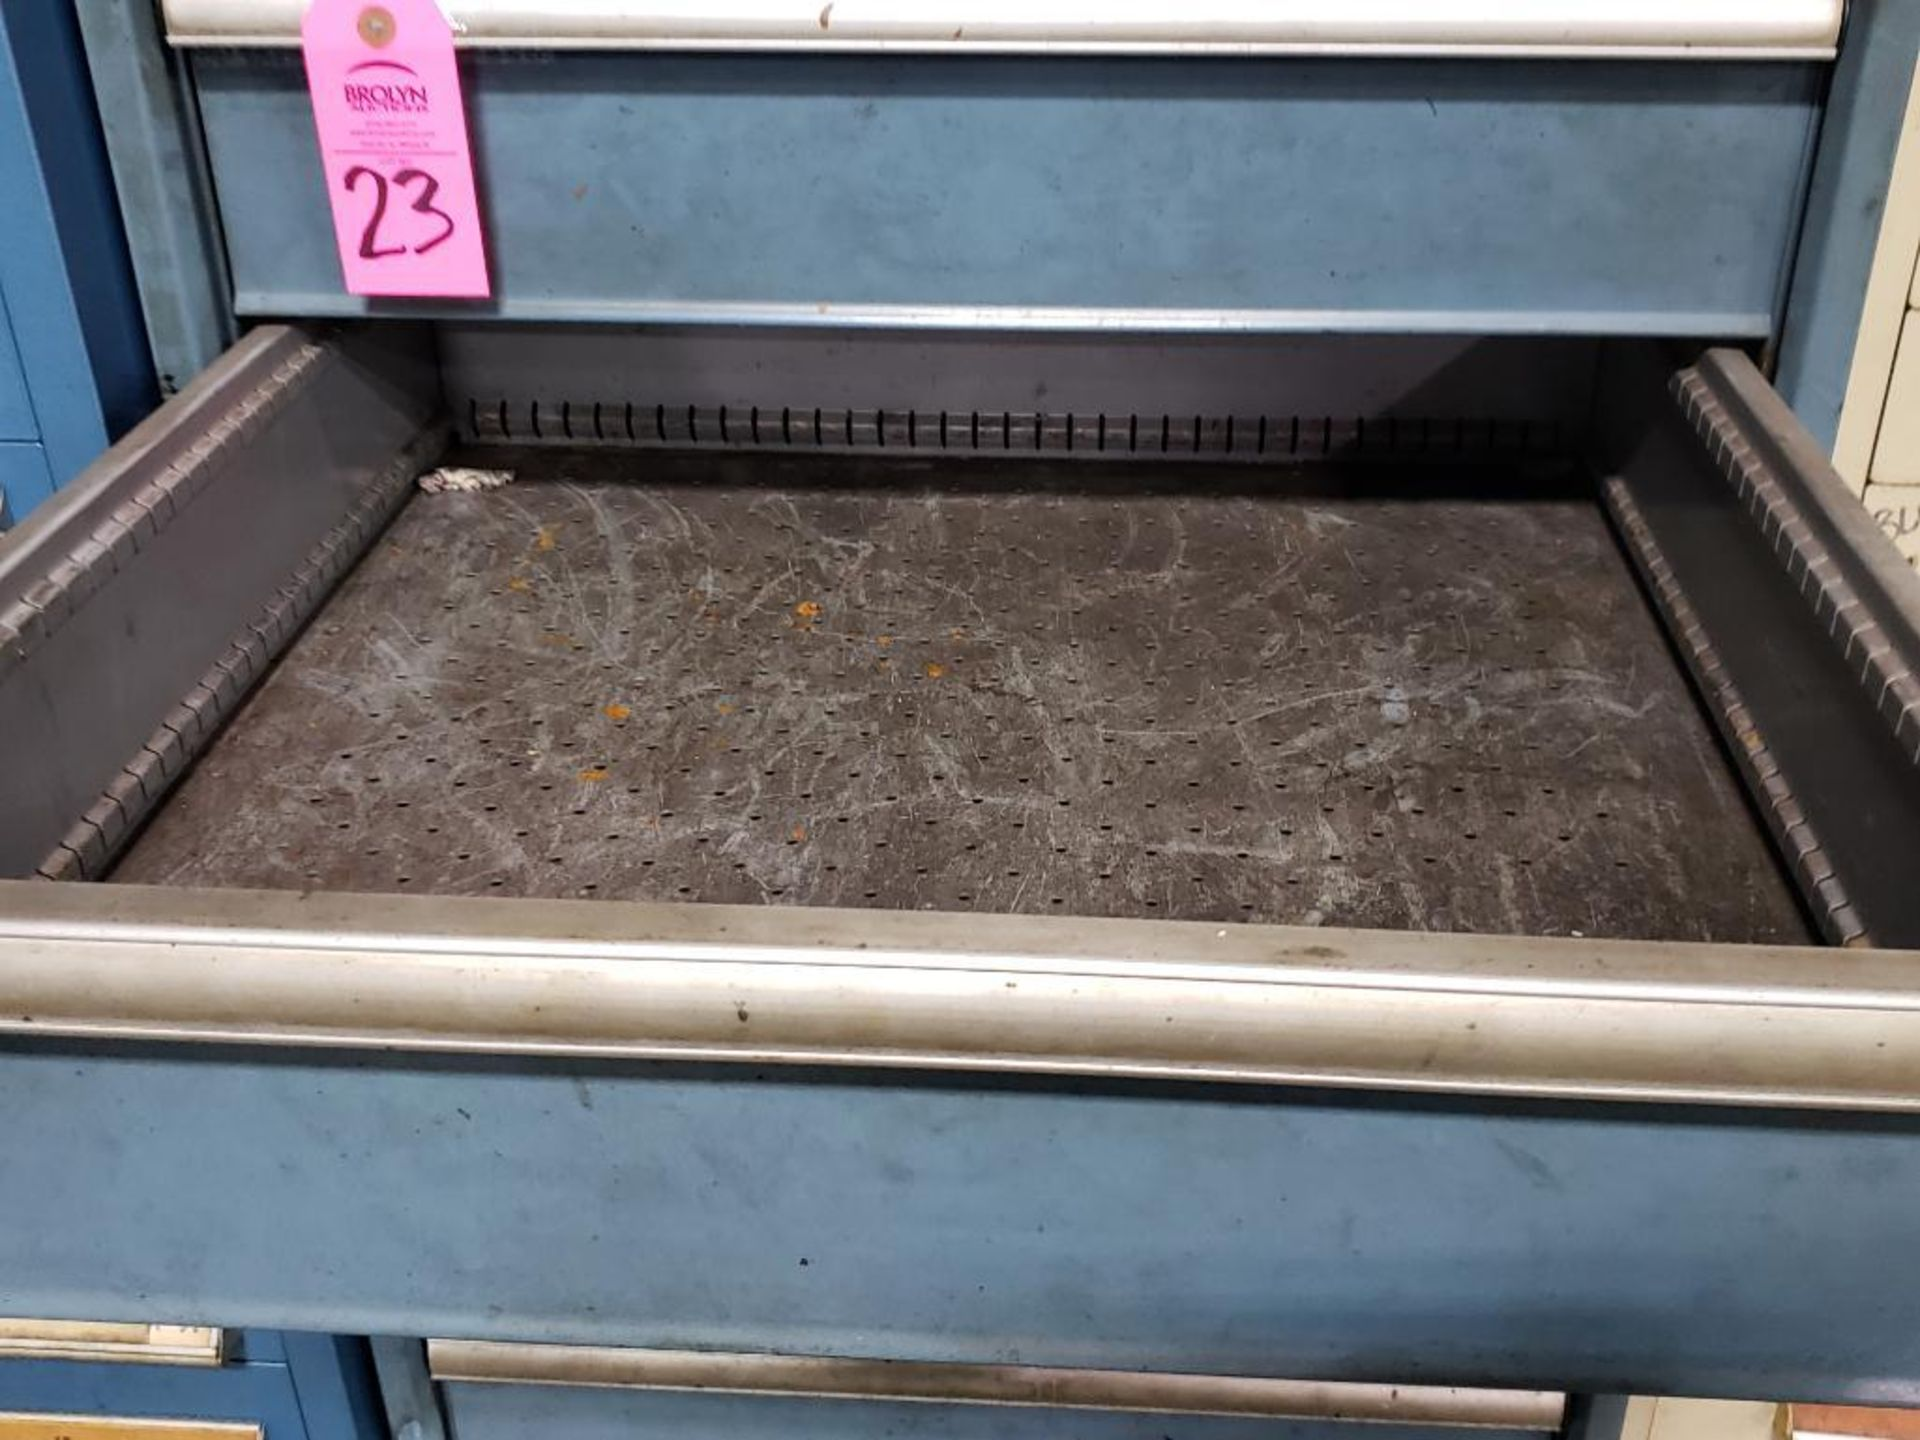 Lot 23 - 8 drawer Lista tool cabinet. Overall dimensions 59Tx28.5Wx29D.